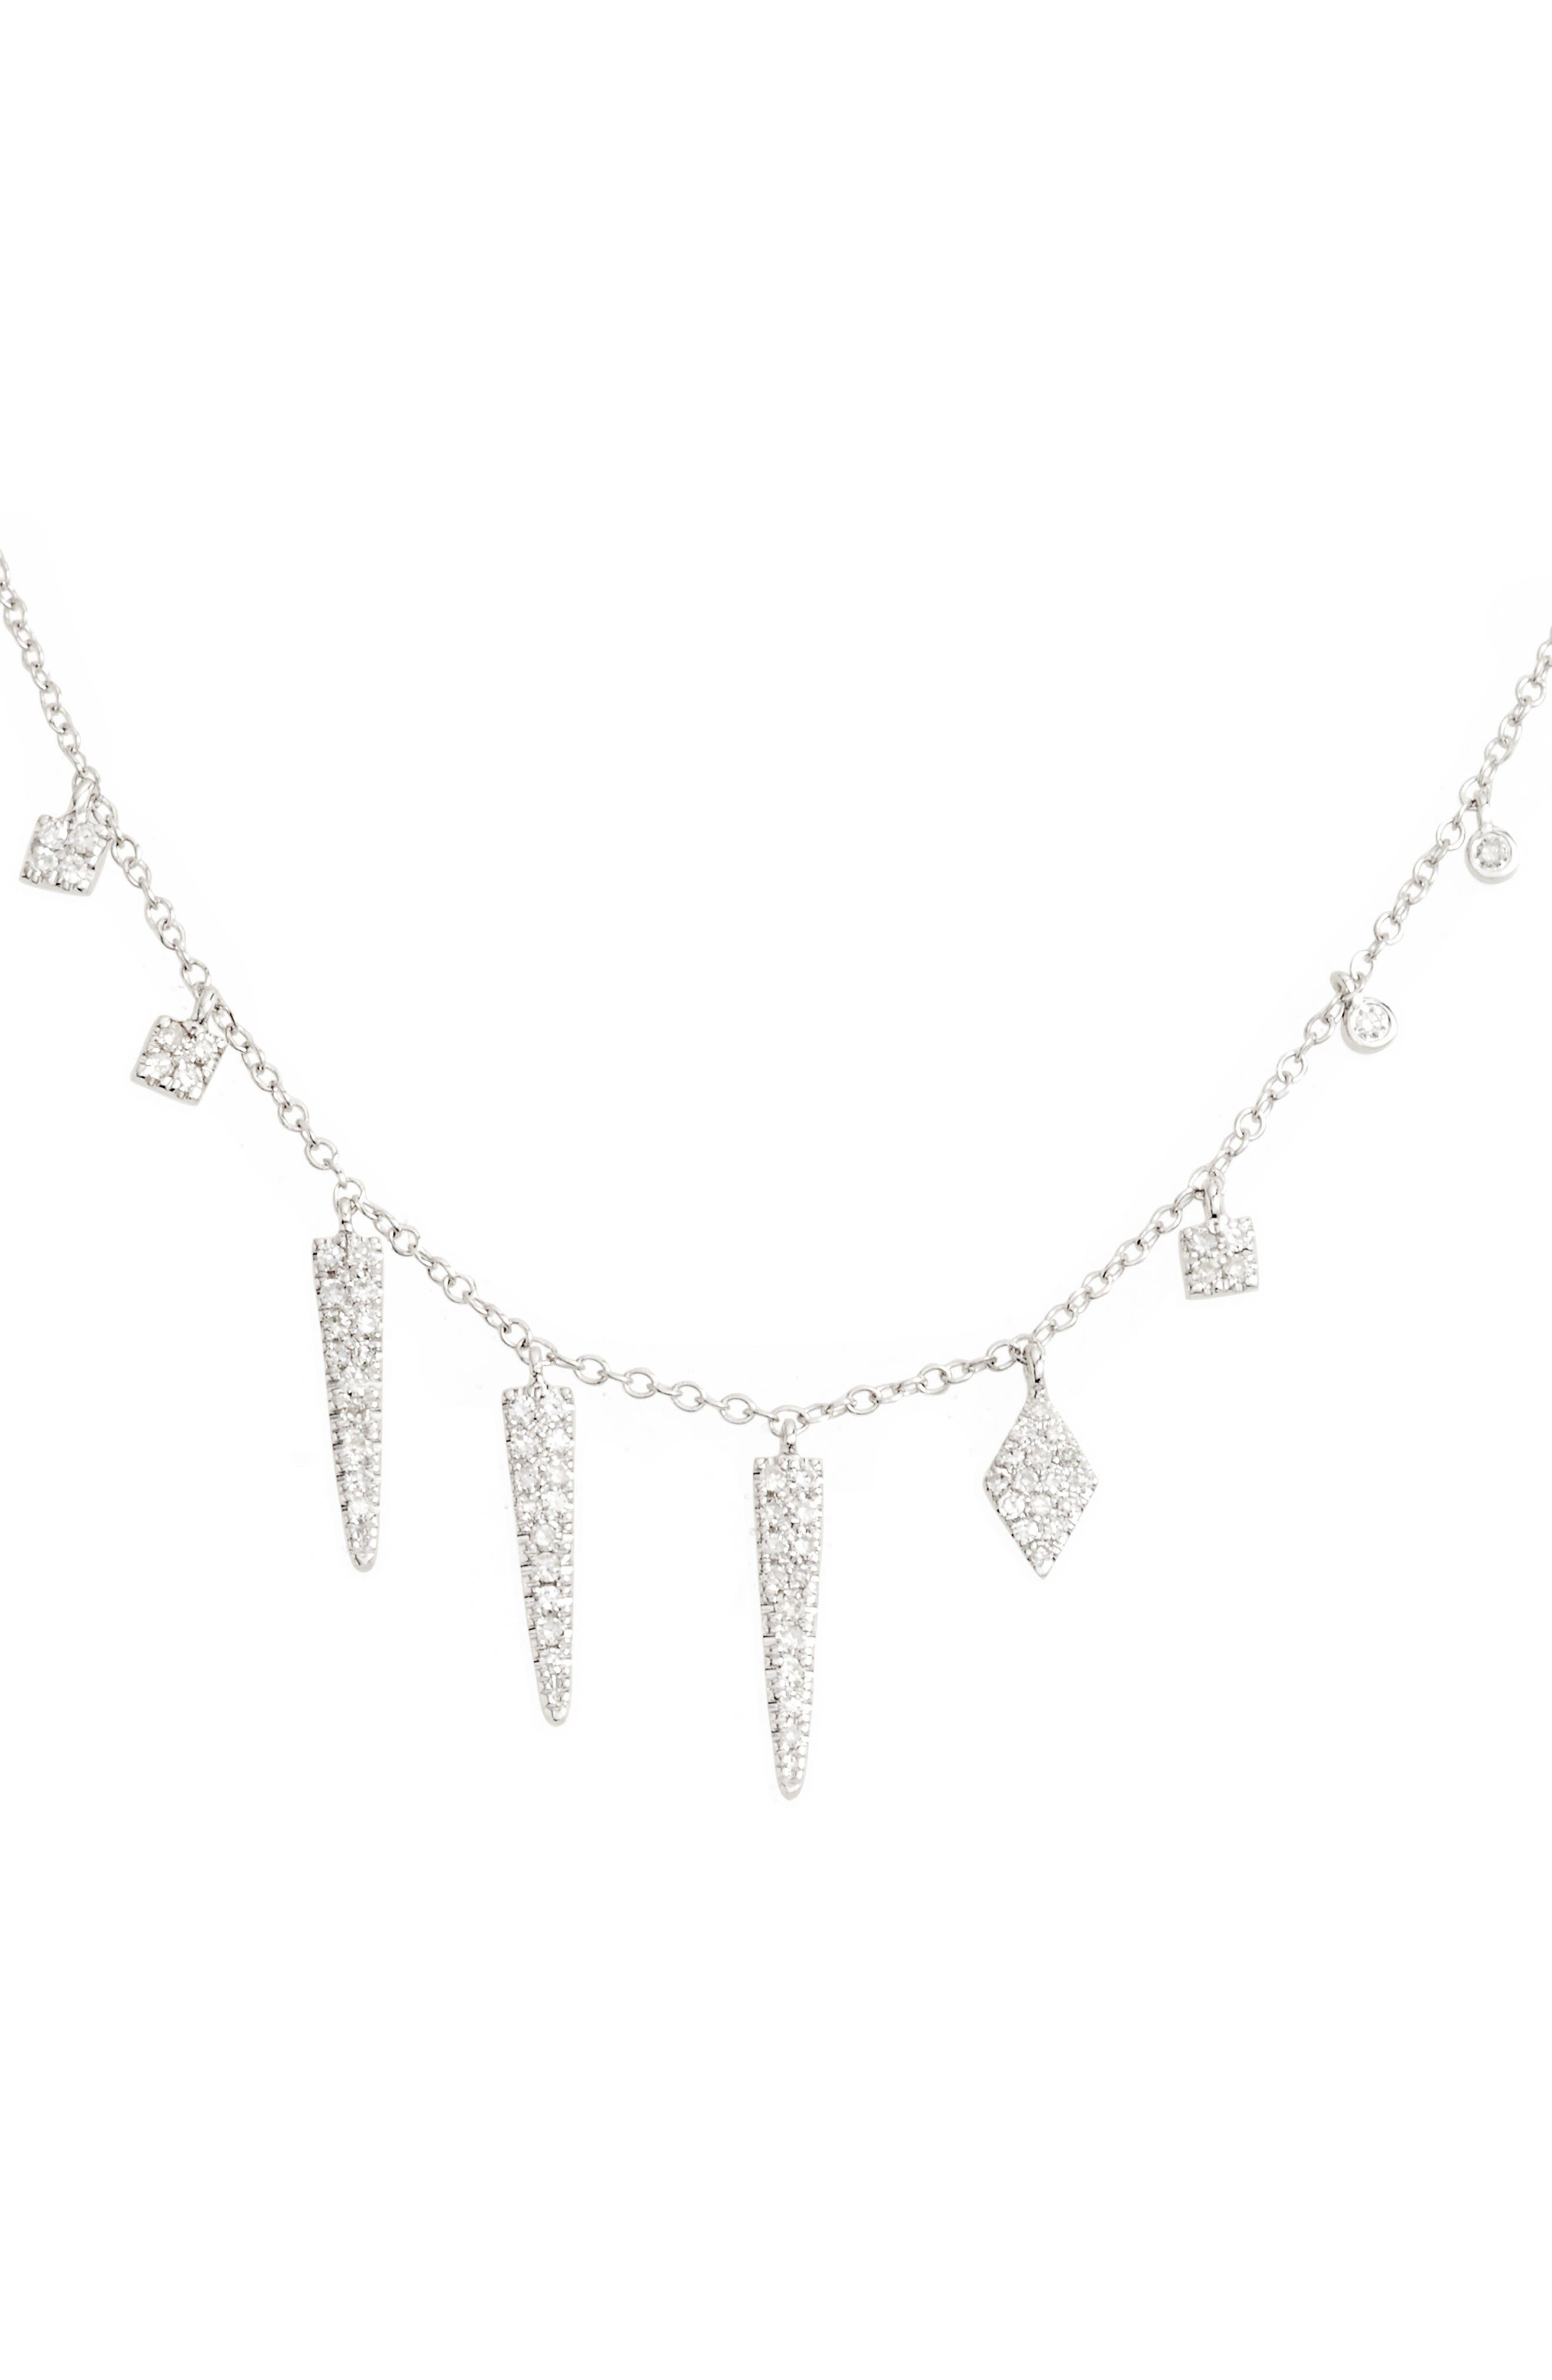 Diamond Spike Dangle Charm Necklace,                         Main,                         color, White Gold